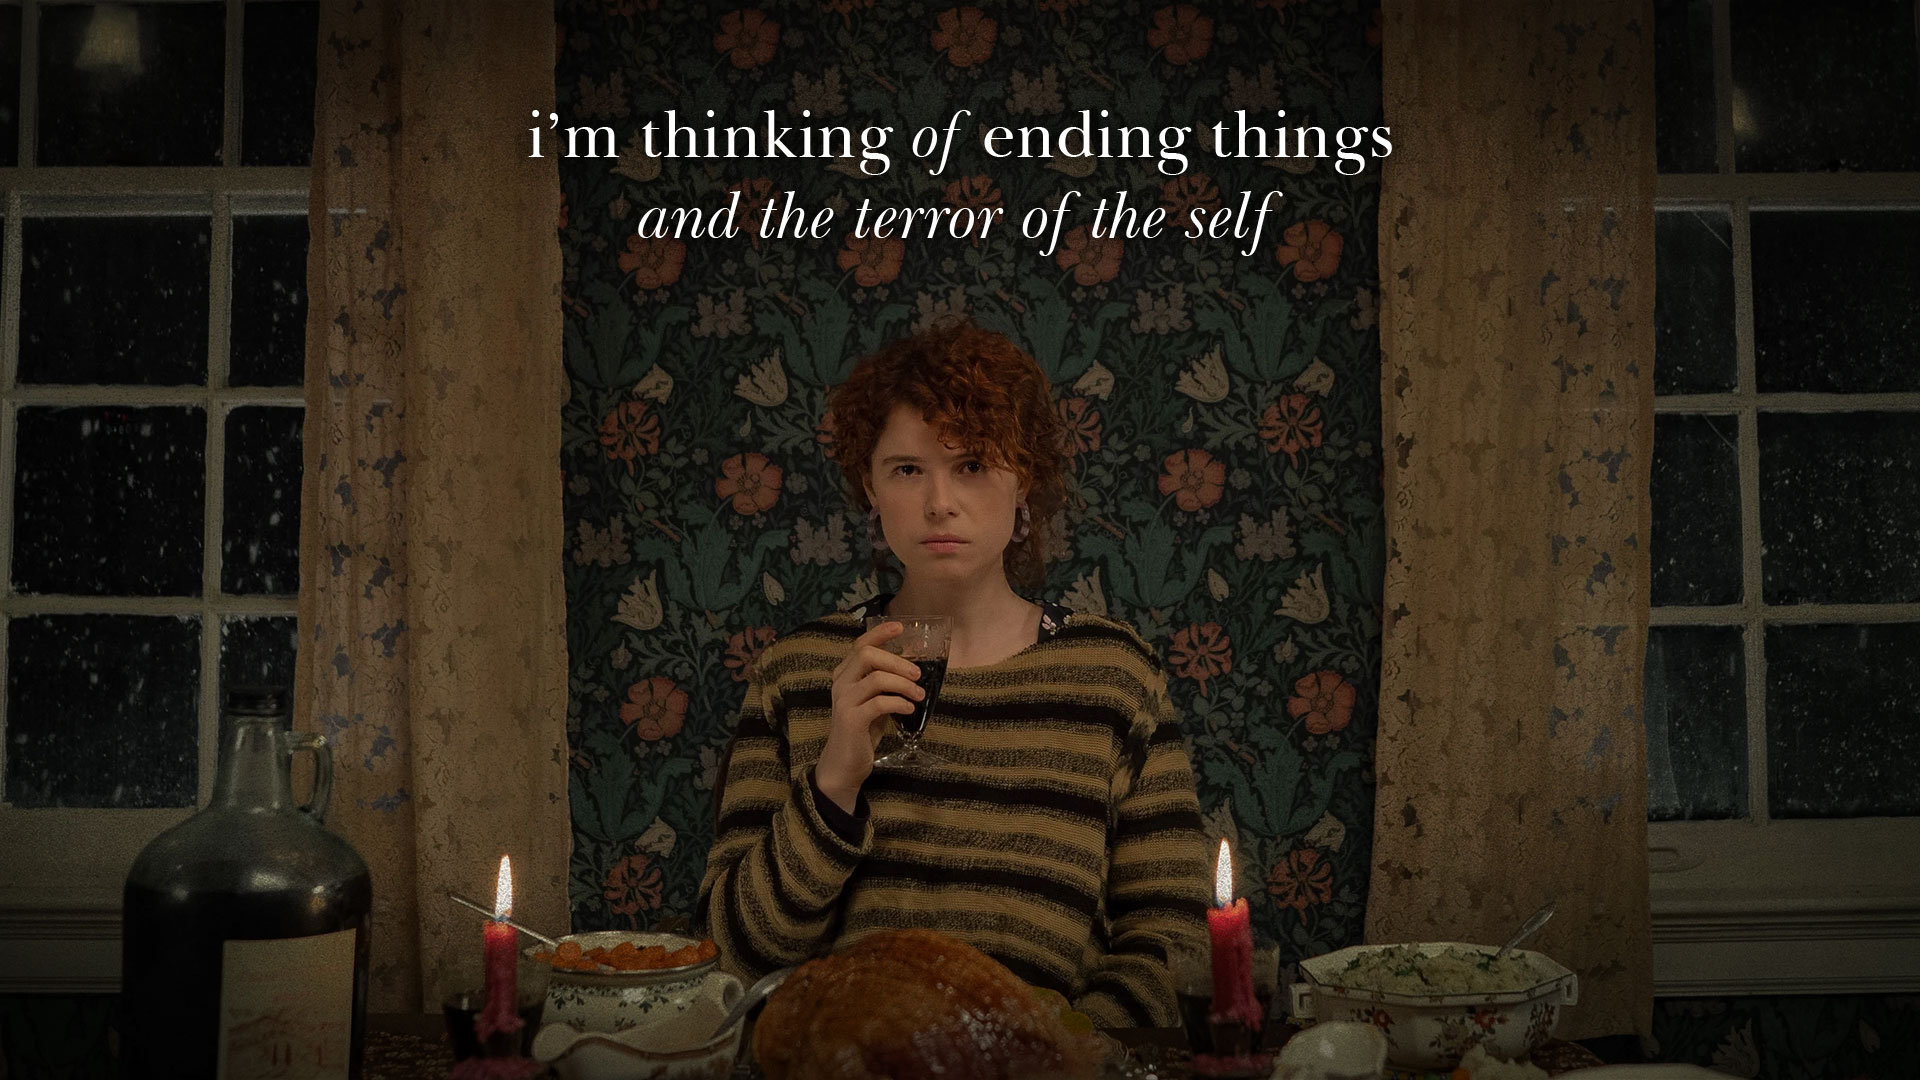 HORRORWOOD™ Presents... ''I'm Thinking of Ending Things' and the Terror of the Self'